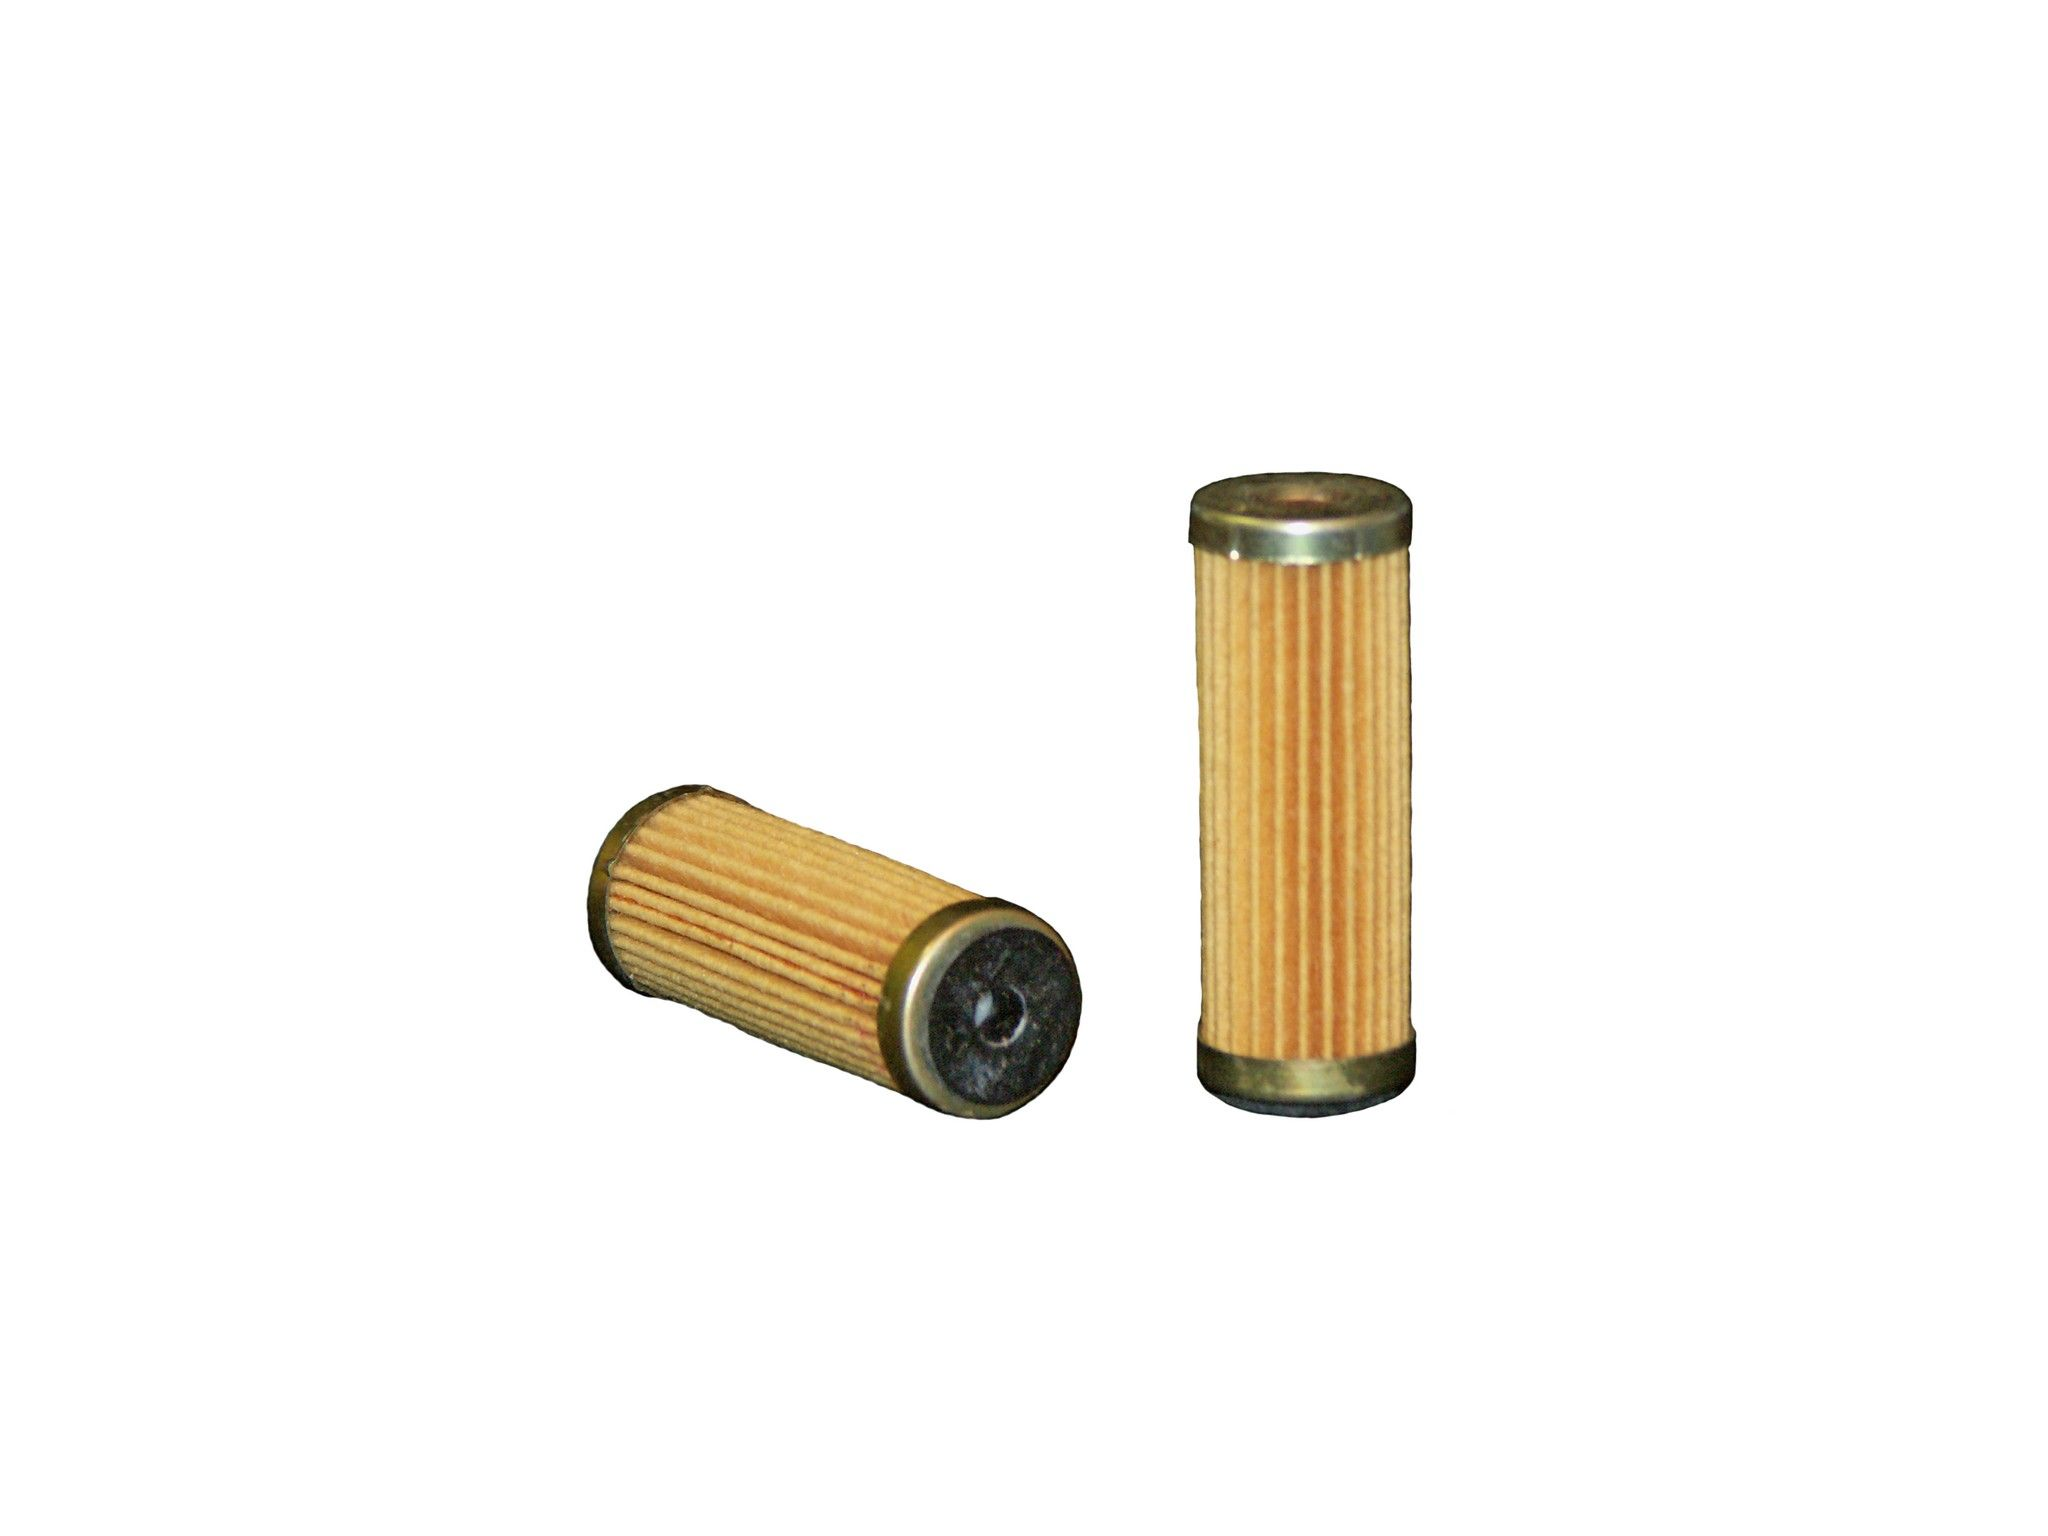 Jeep Cherokee Fuel Filter Replacement Fram Hastings Mahle Mopar Filters 1984 6 Cyl 28l Wix 33052